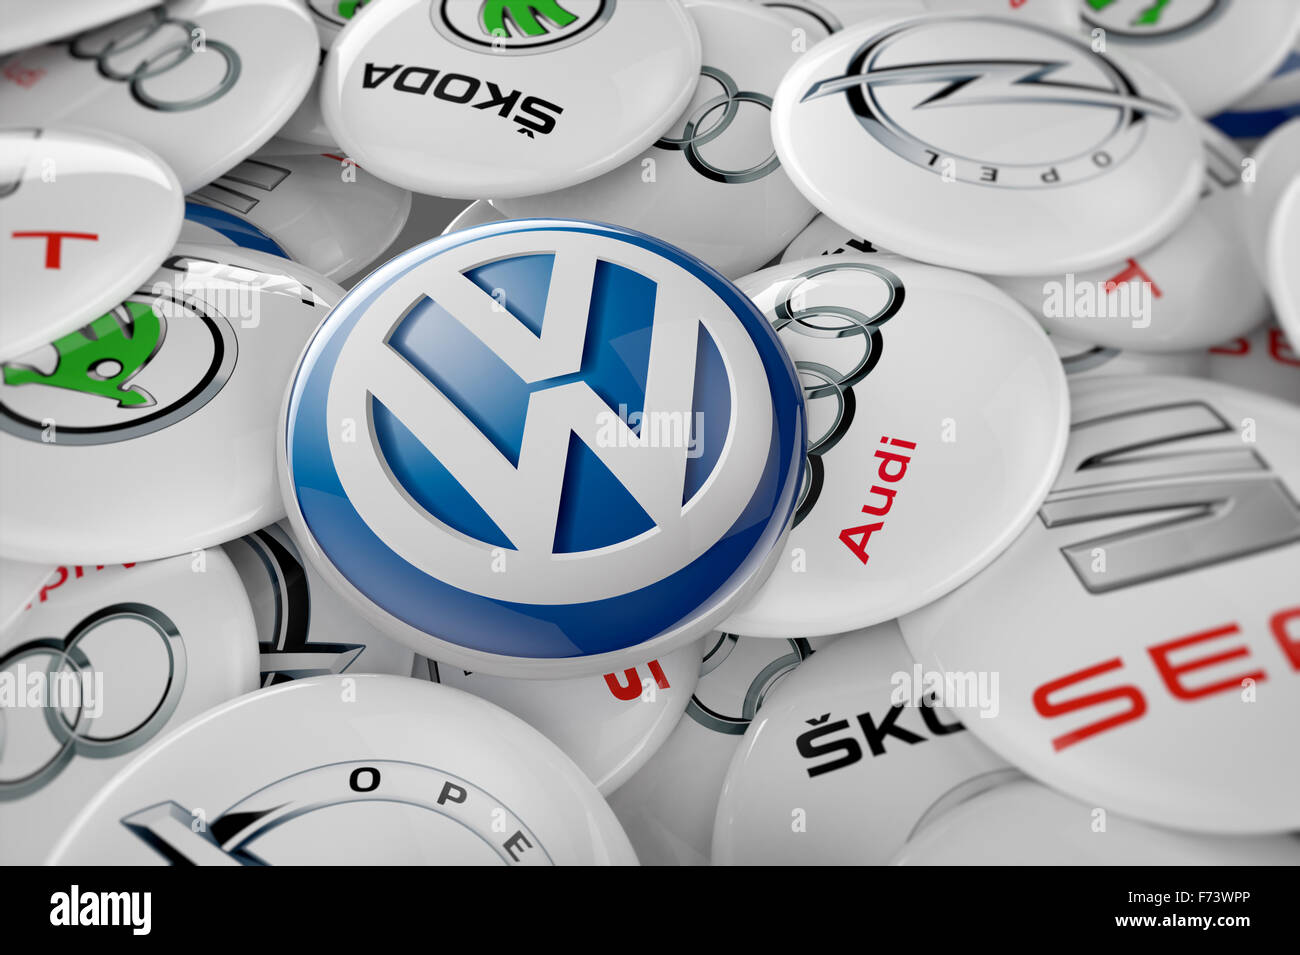 3D illustration of all car manufacturers involved in the pollution emissions scandal. - Stock Image